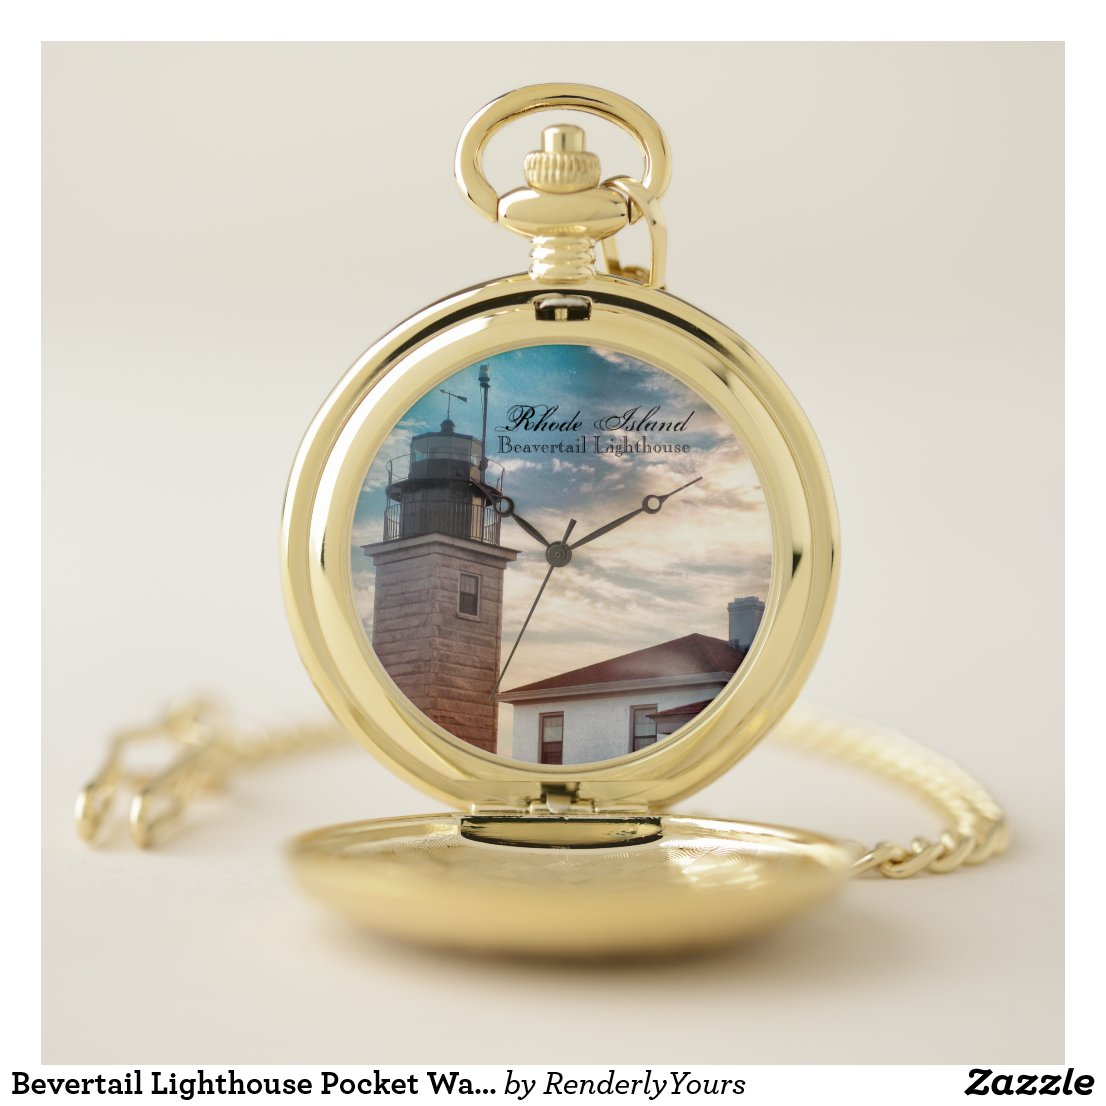 Bevertail Lighthouse Pocket Watch